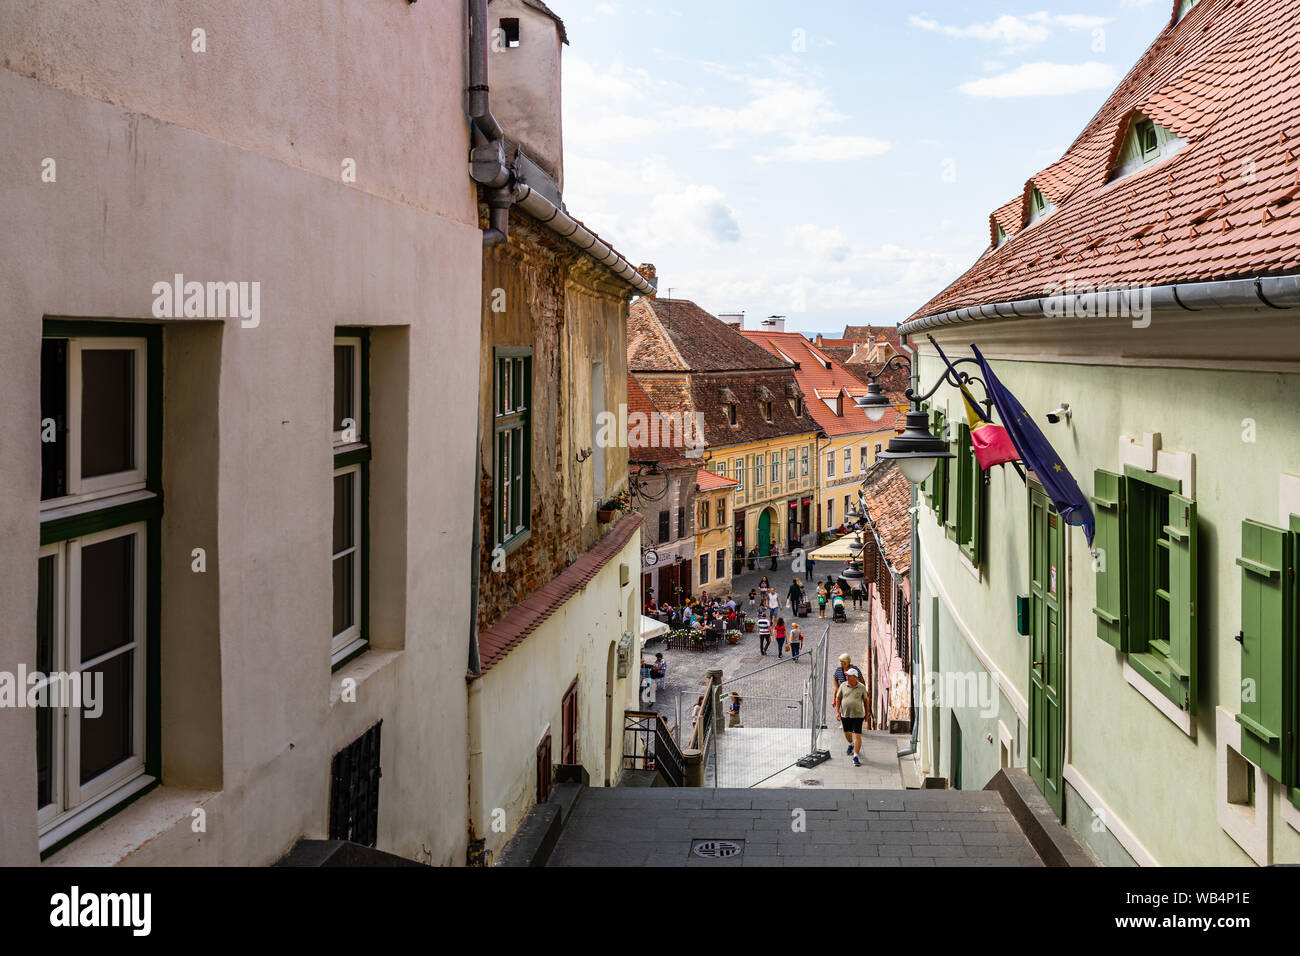 Sibiu, Romania - 2019. People wandering on the streets of Sibiu (old town). Streets with colorful houses. Stock Photo